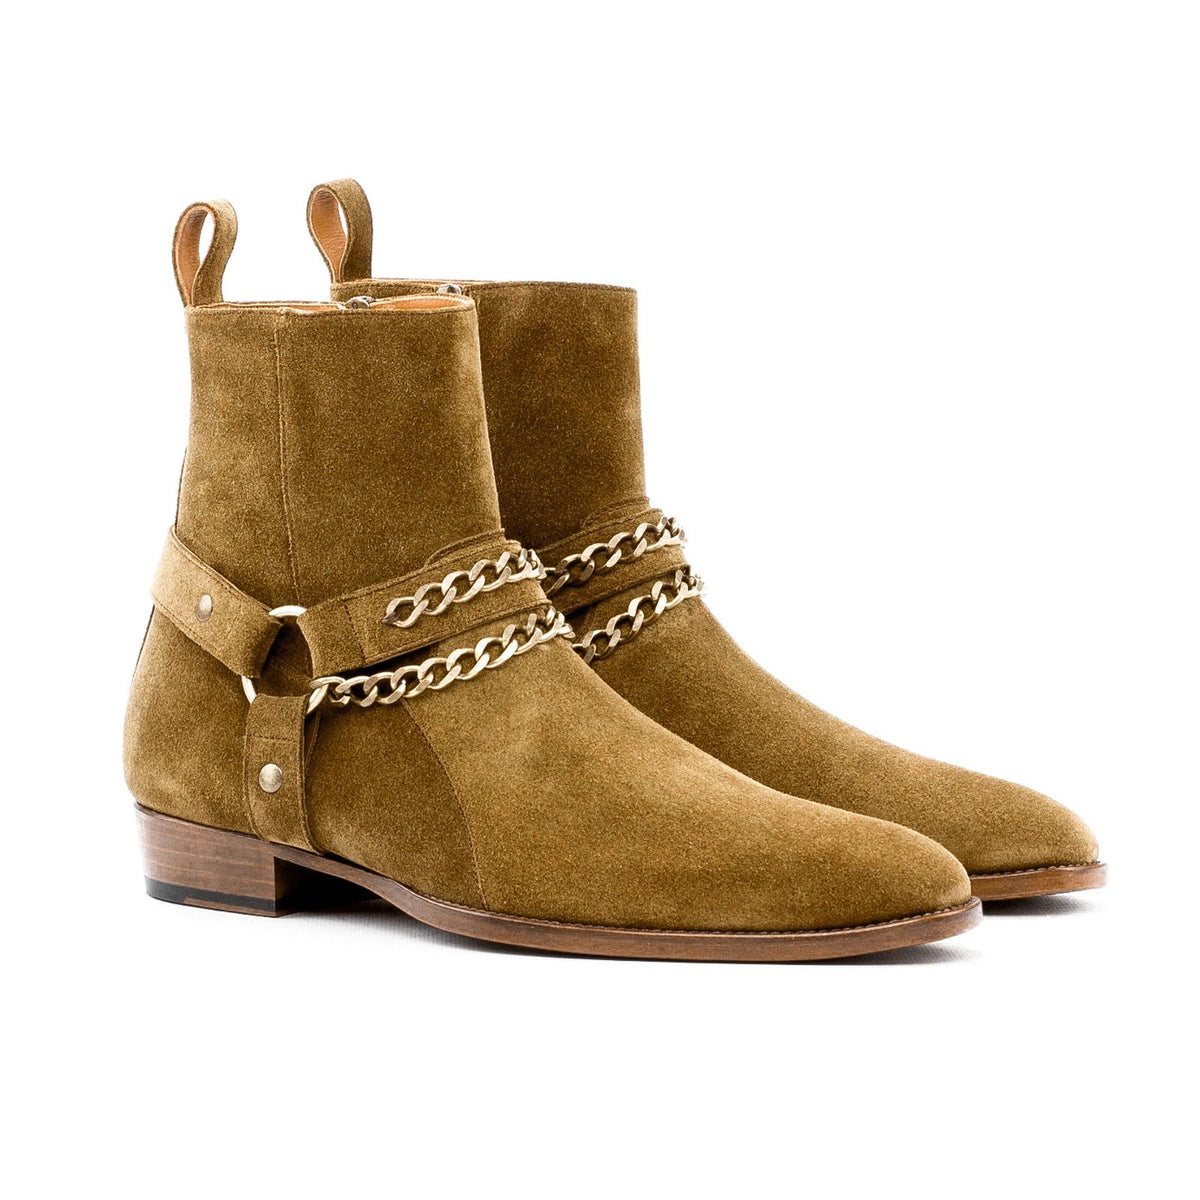 THE ORO HENRIK HARNESS BOOTS